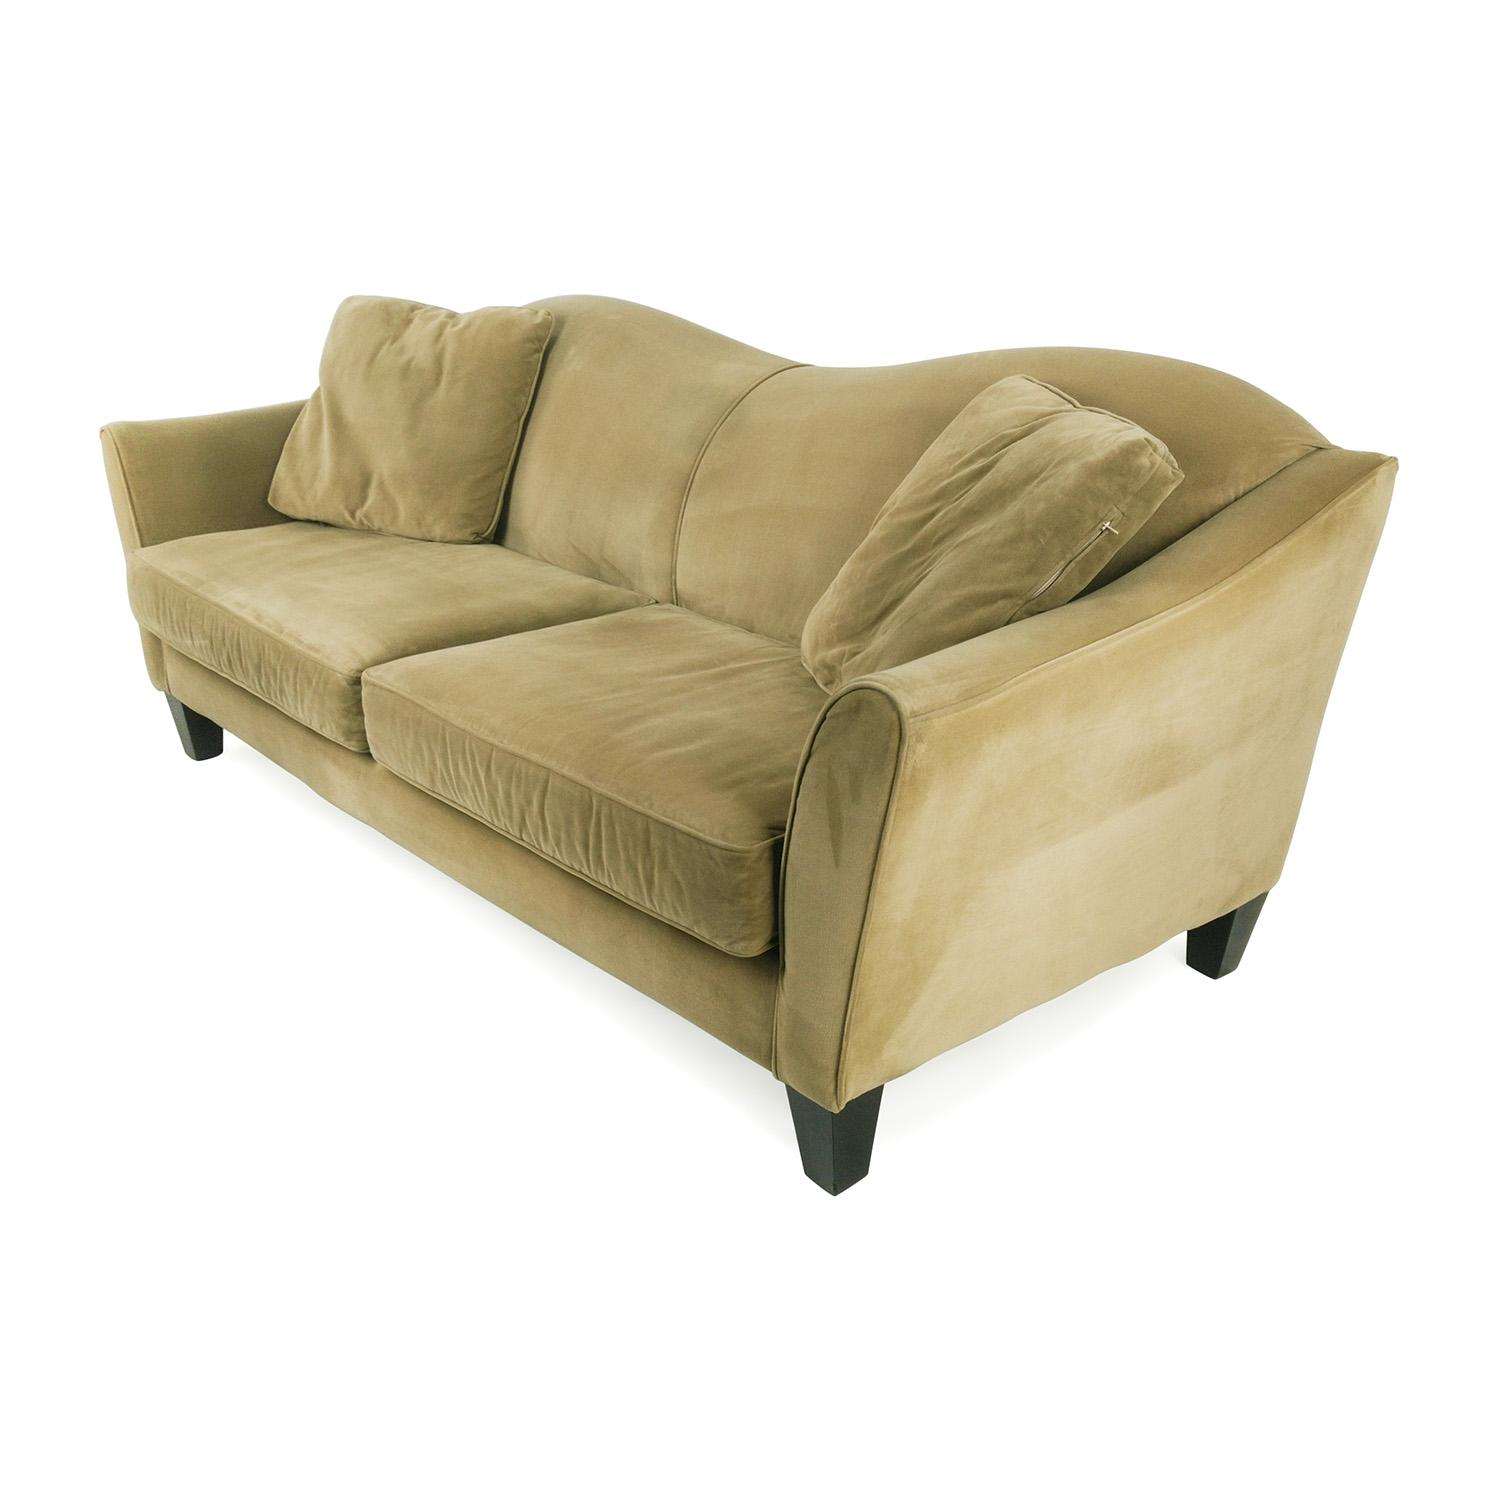 75 Off Raymour And Flanigan Raymour And Flanigan Classic Sofa Sofas